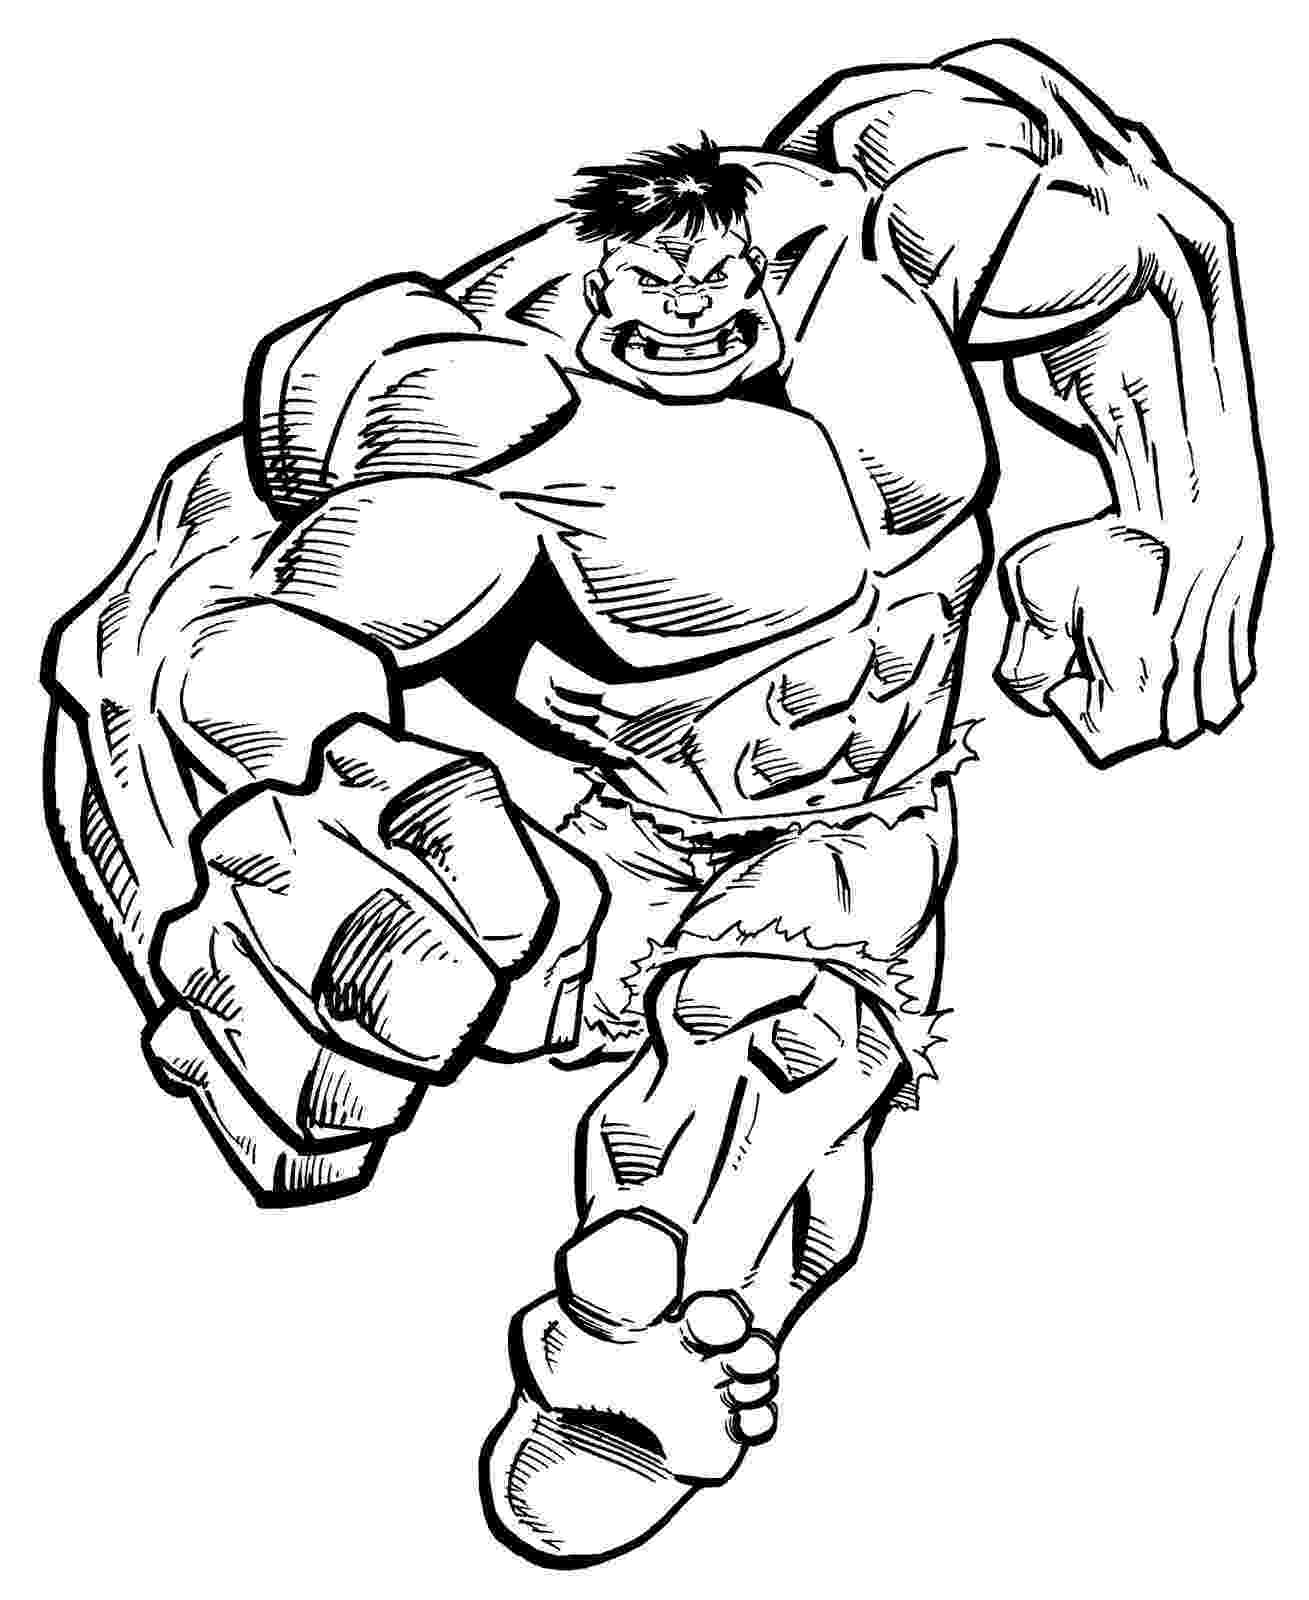 picture of hulk free printable hulk coloring pages for kids valentine39s hulk picture of